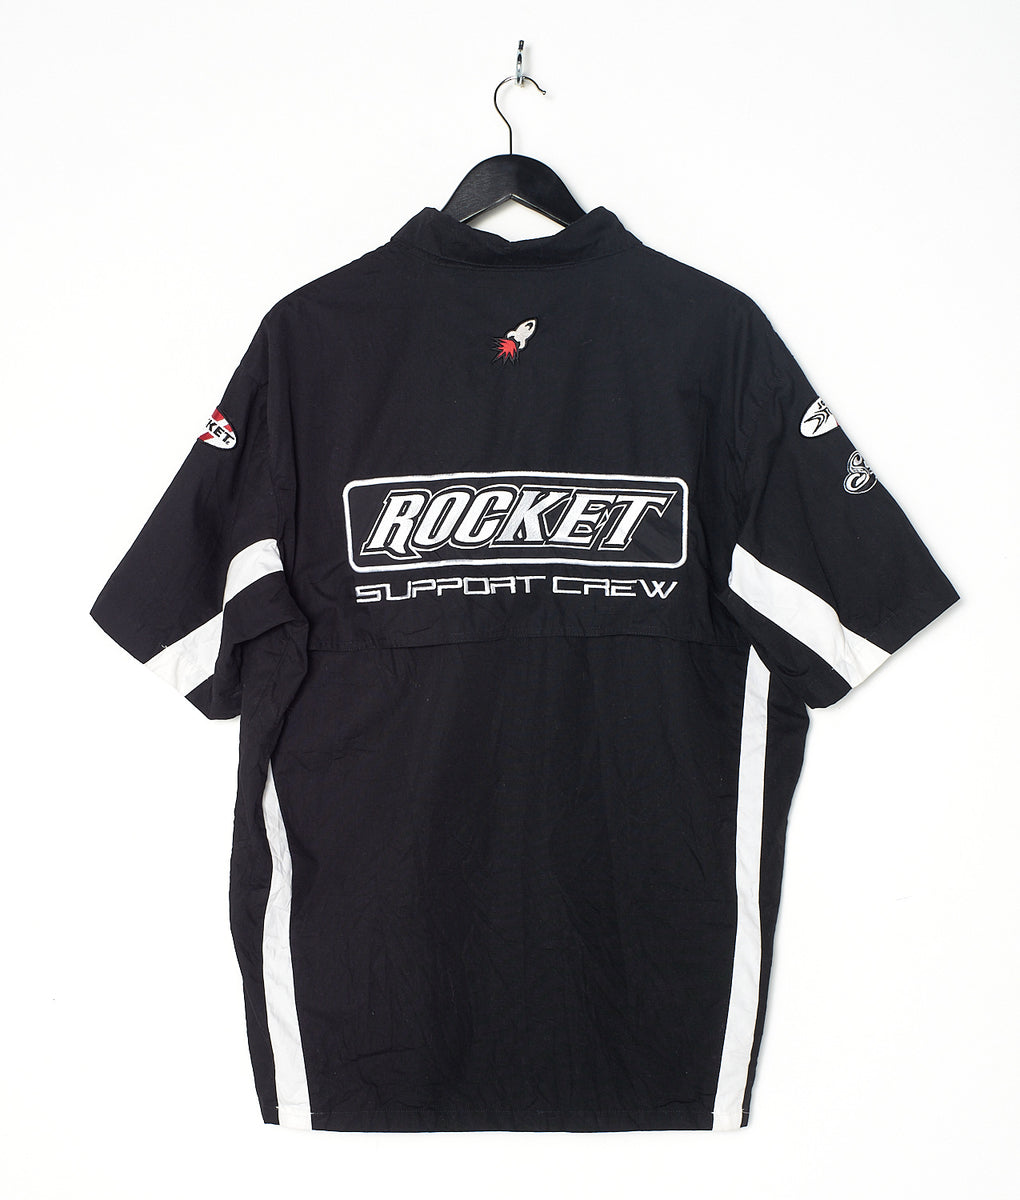 Rocket Racing S/S Shirt (XL)